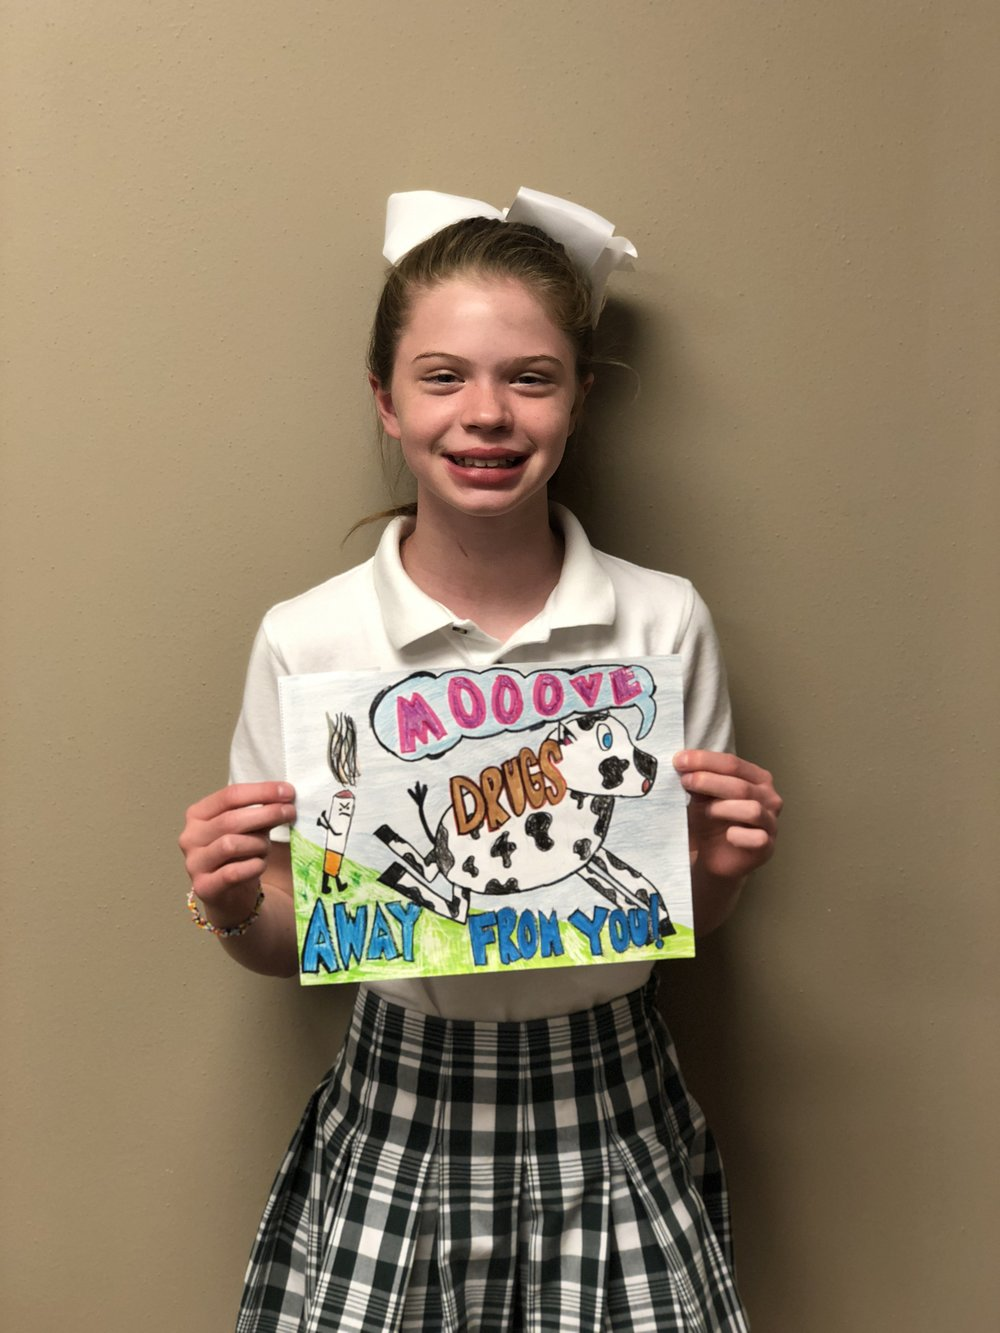 Emmy Roberts - Emmy Roberts is a 5th grader who chose a cow for her artwork because she loves cows. She enjoys playing basketball in her spare time. She has a younger sister, an older stepsister, and 2 dogs. This summer, Emmy will help clean up White Rock Lake and will attend Camp Waldemar.